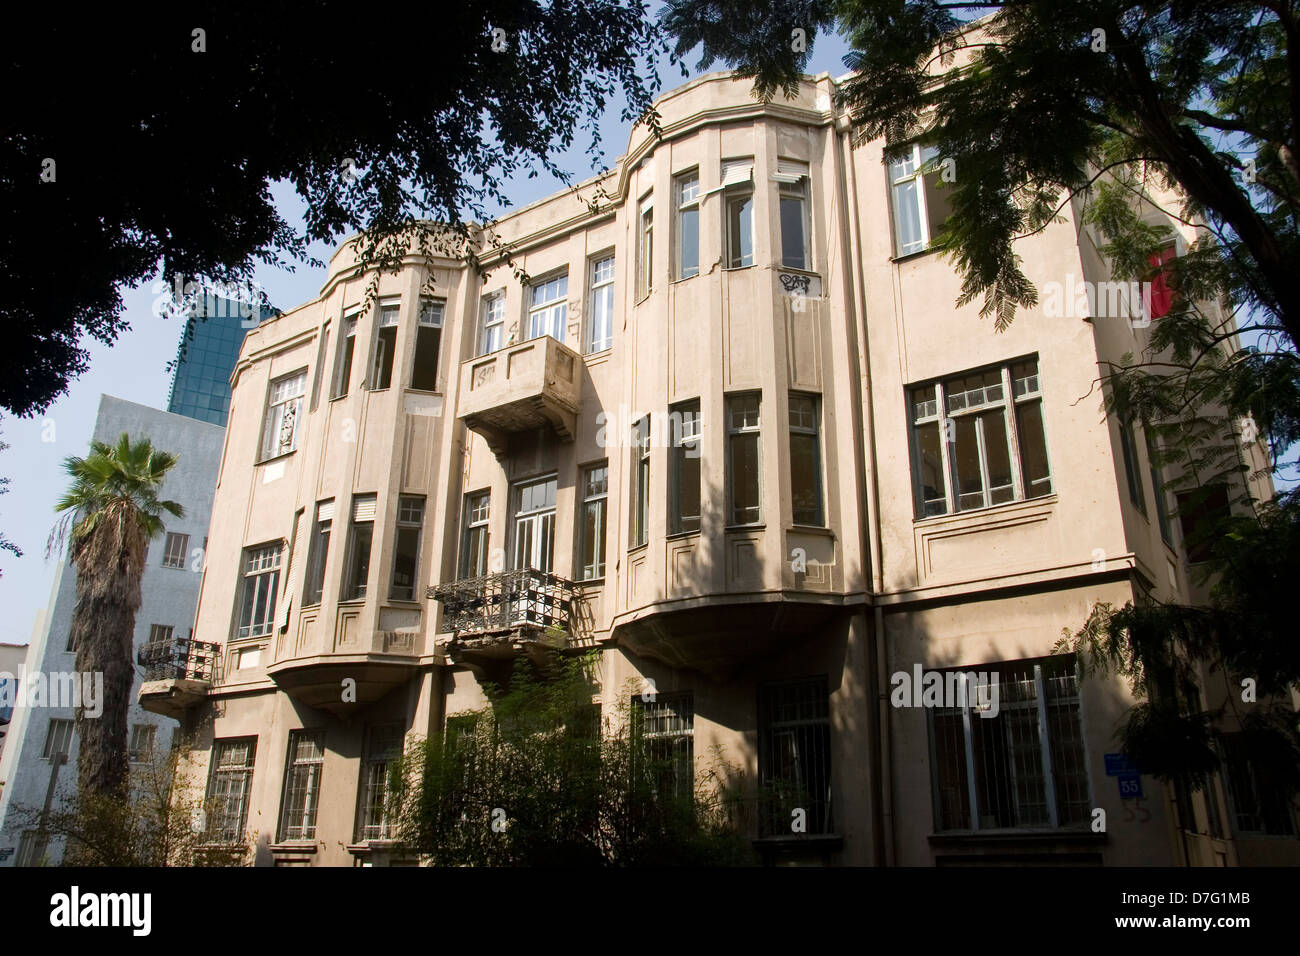 architecture in rothschild boulevard, tel aviv, 2007 - Stock Image